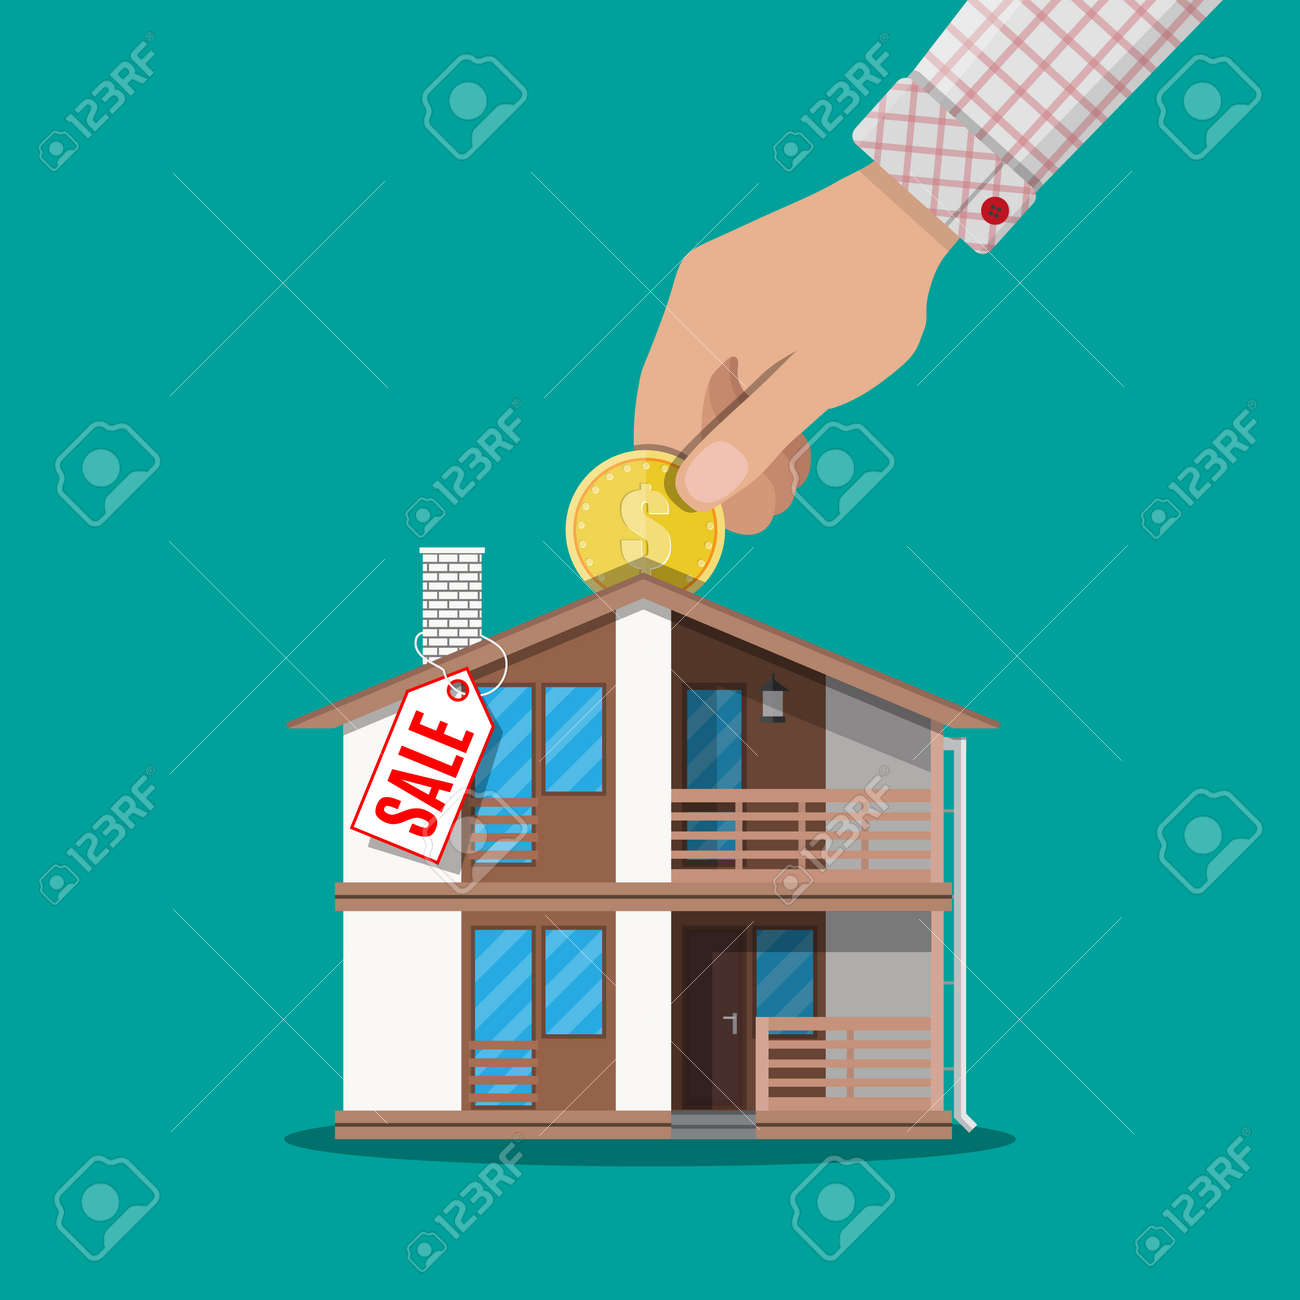 Hand Put Coin In Piggy Bank House With Price Tag Real Estate